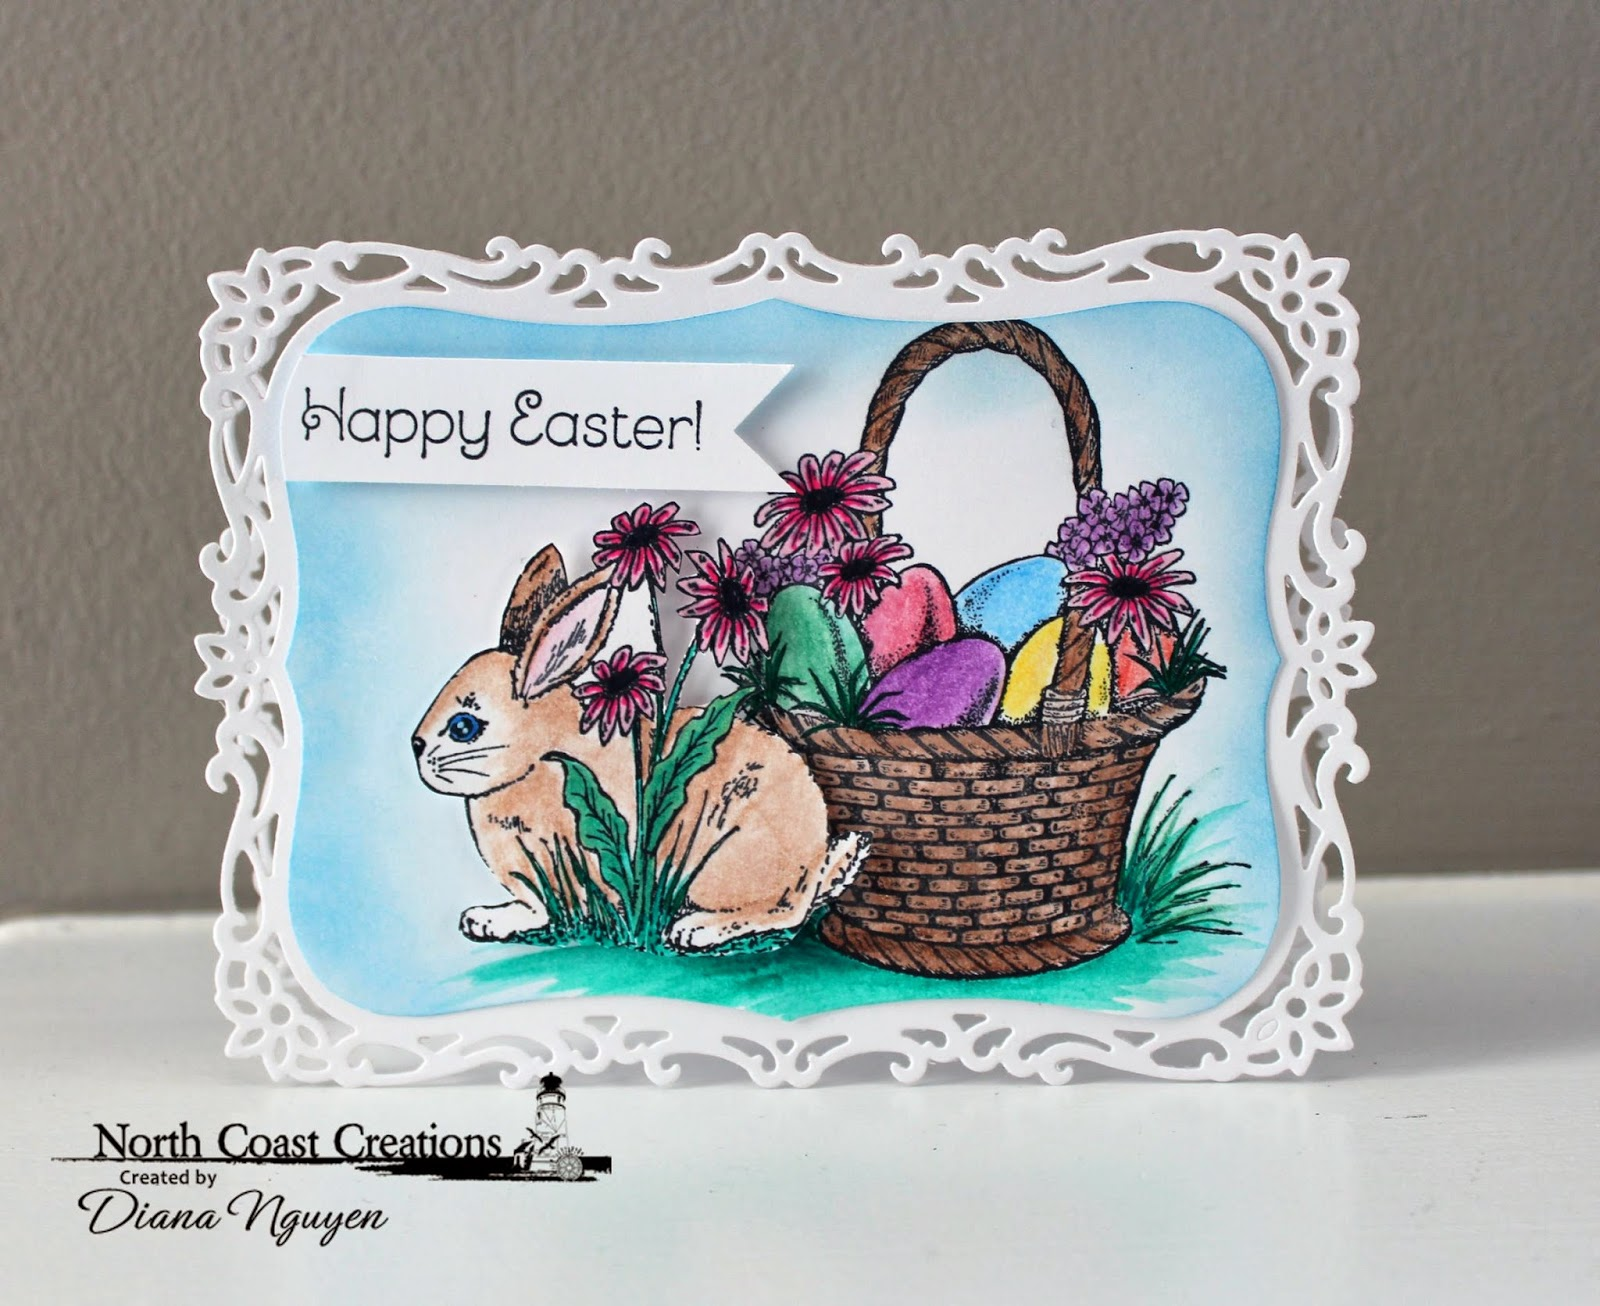 Diana Nguyen, North Coast Creation, Easter card